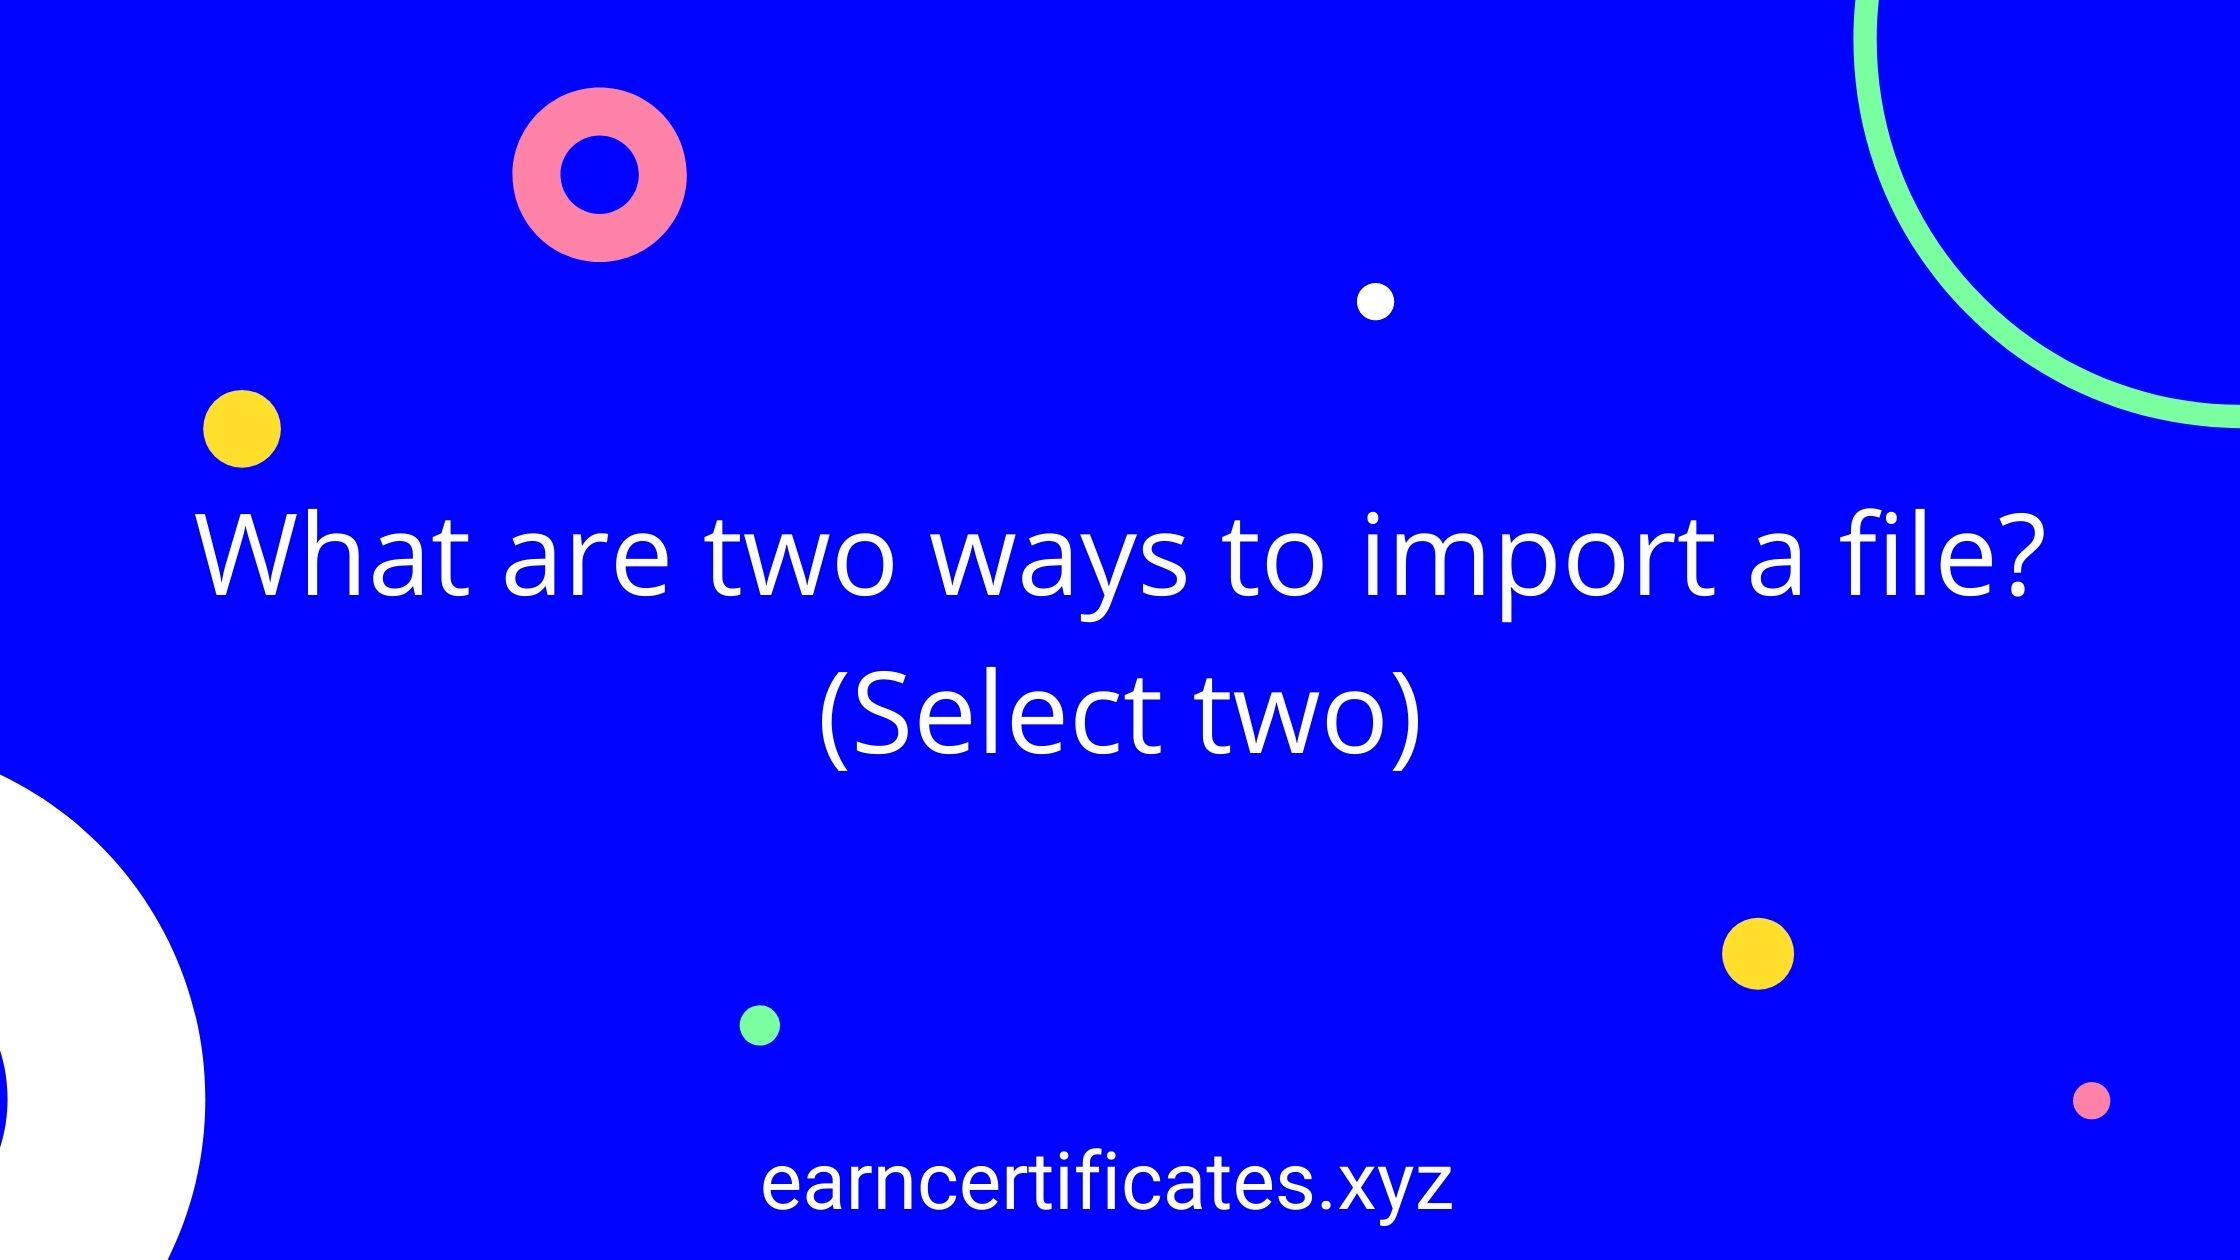 What are two ways to import a file? (Select two)